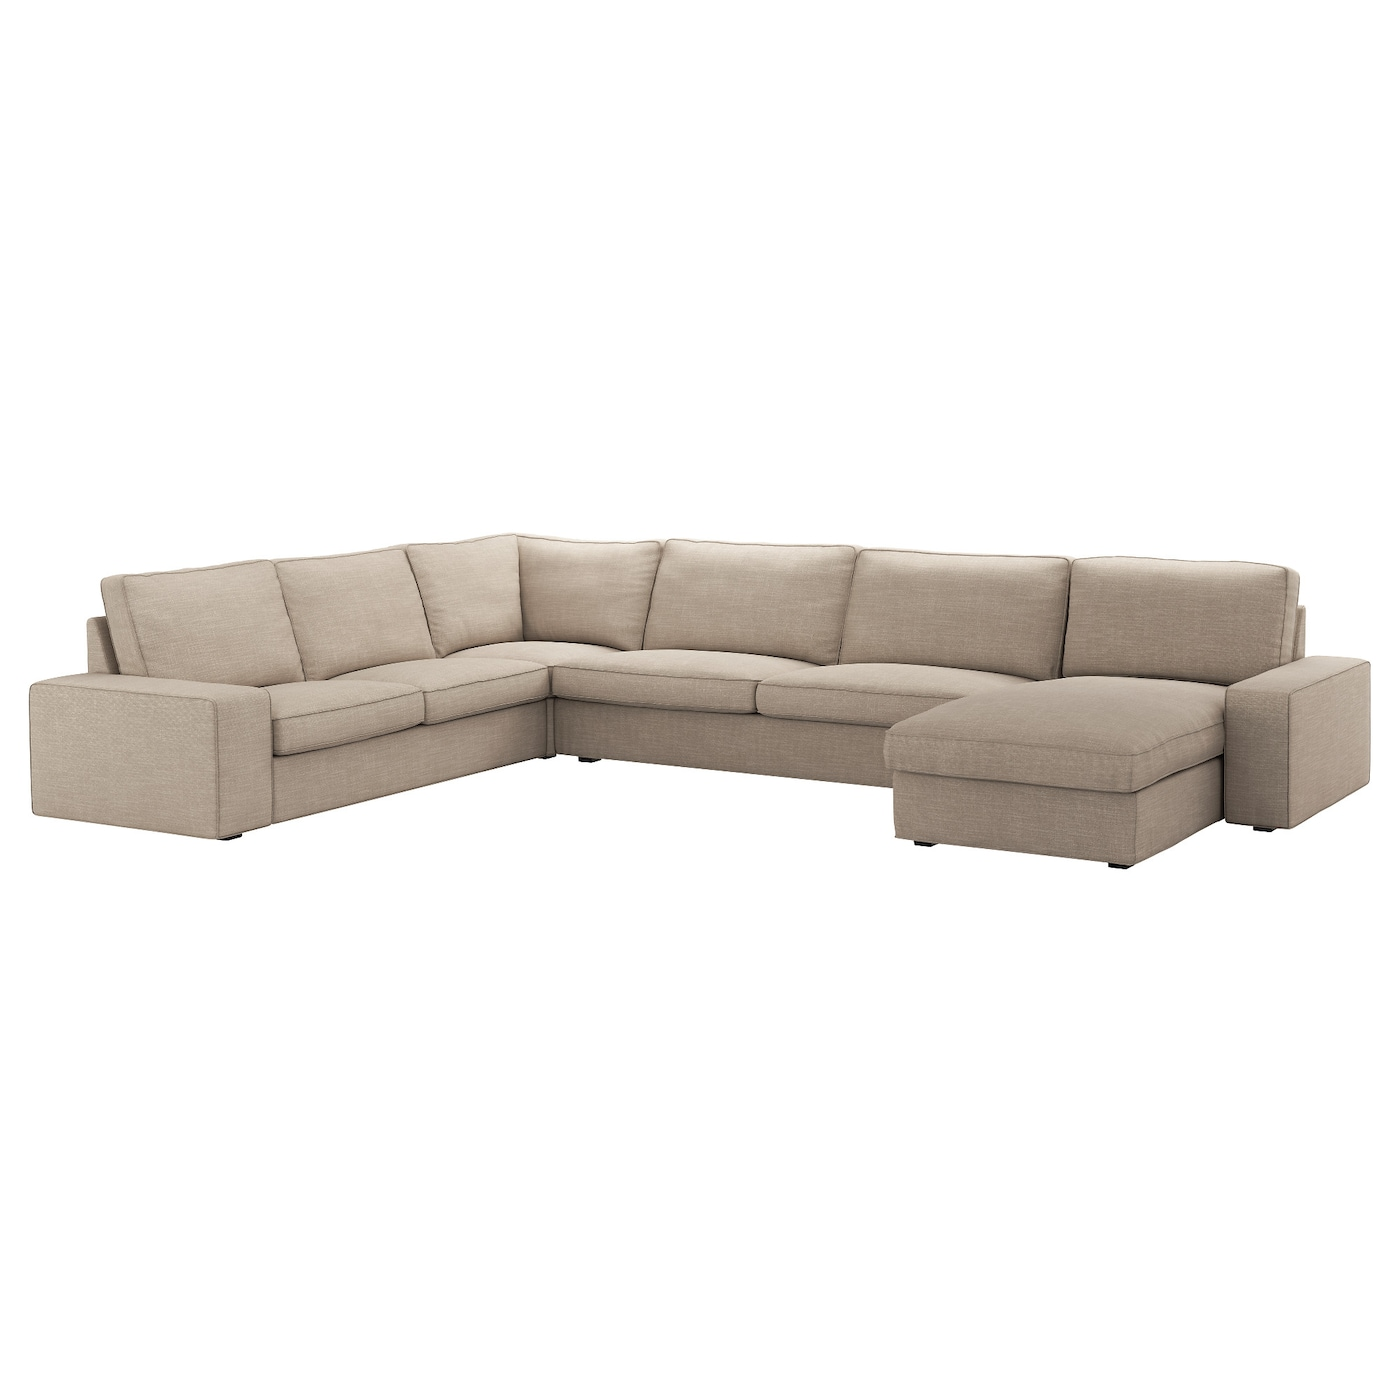 Kivik corner sofa 23 32 and chaise longue hillared beige for Catalogos de sofas chaise longue